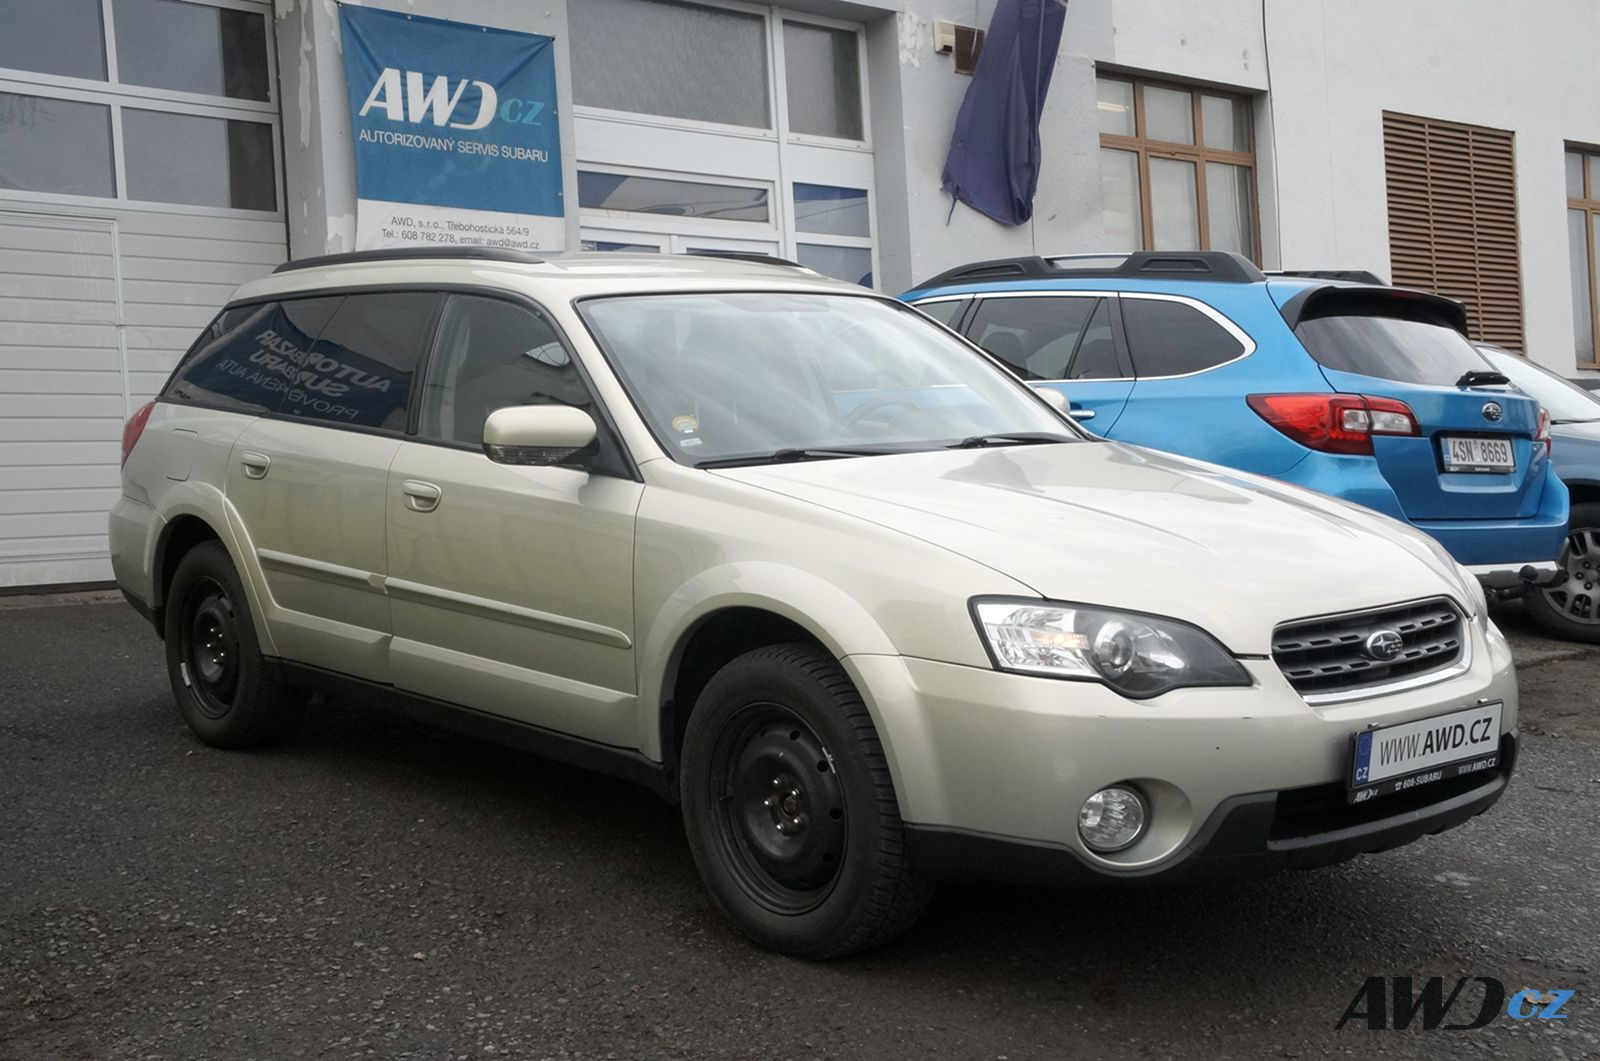 SUBARU Outback 2,5i Active AT MY2006, 149900Kč, 203000 km, 2006